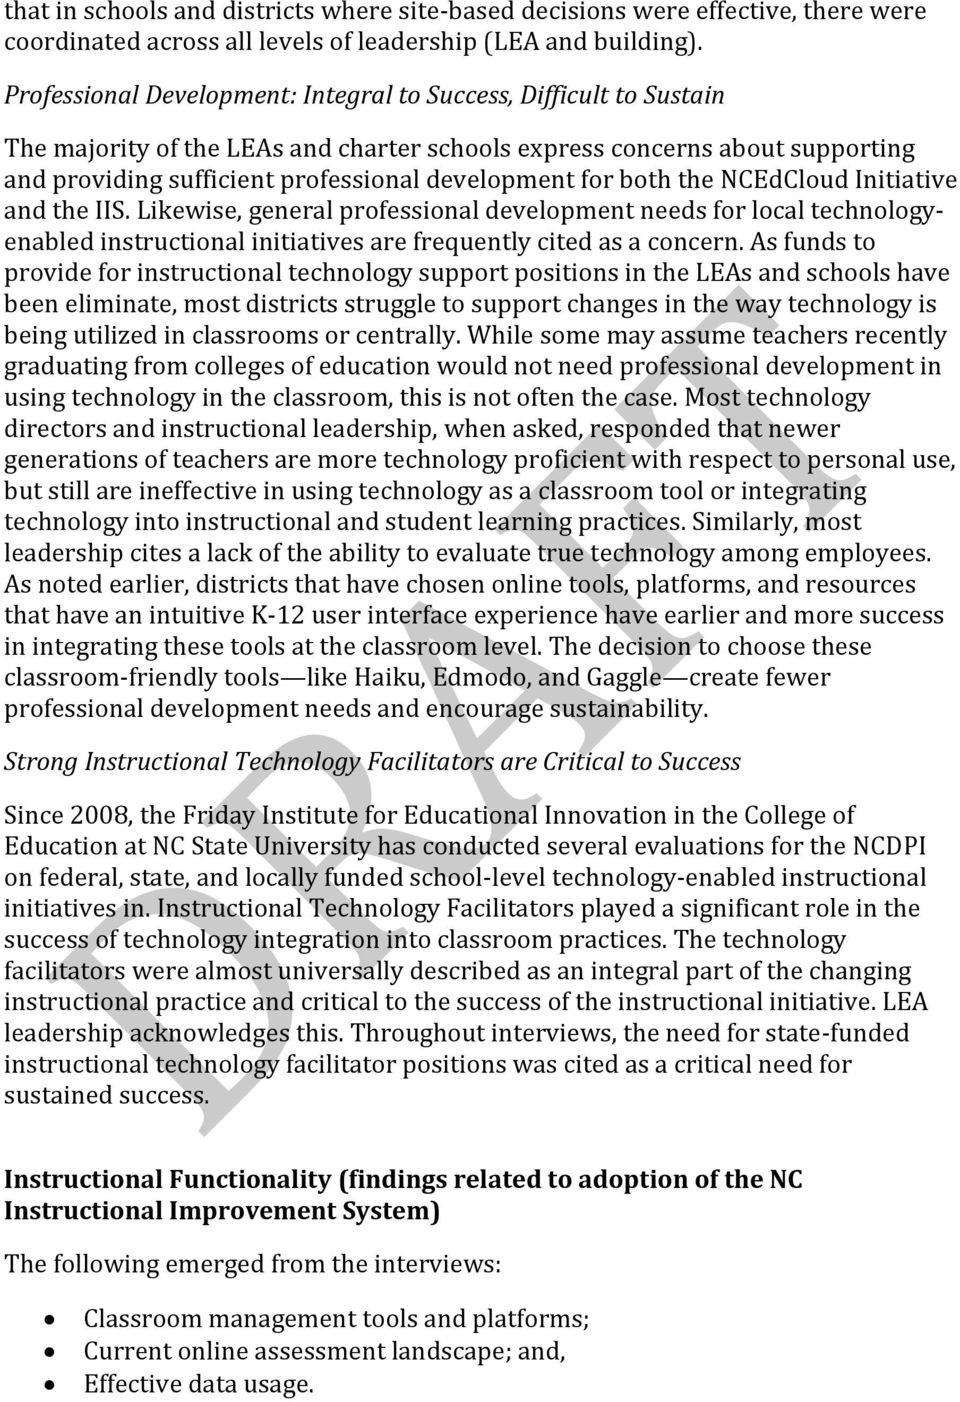 for both the NCEdCloud Initiative and the IIS. Likewise, general professional development needs for local technologyenabled instructional initiatives are frequently cited as a concern.